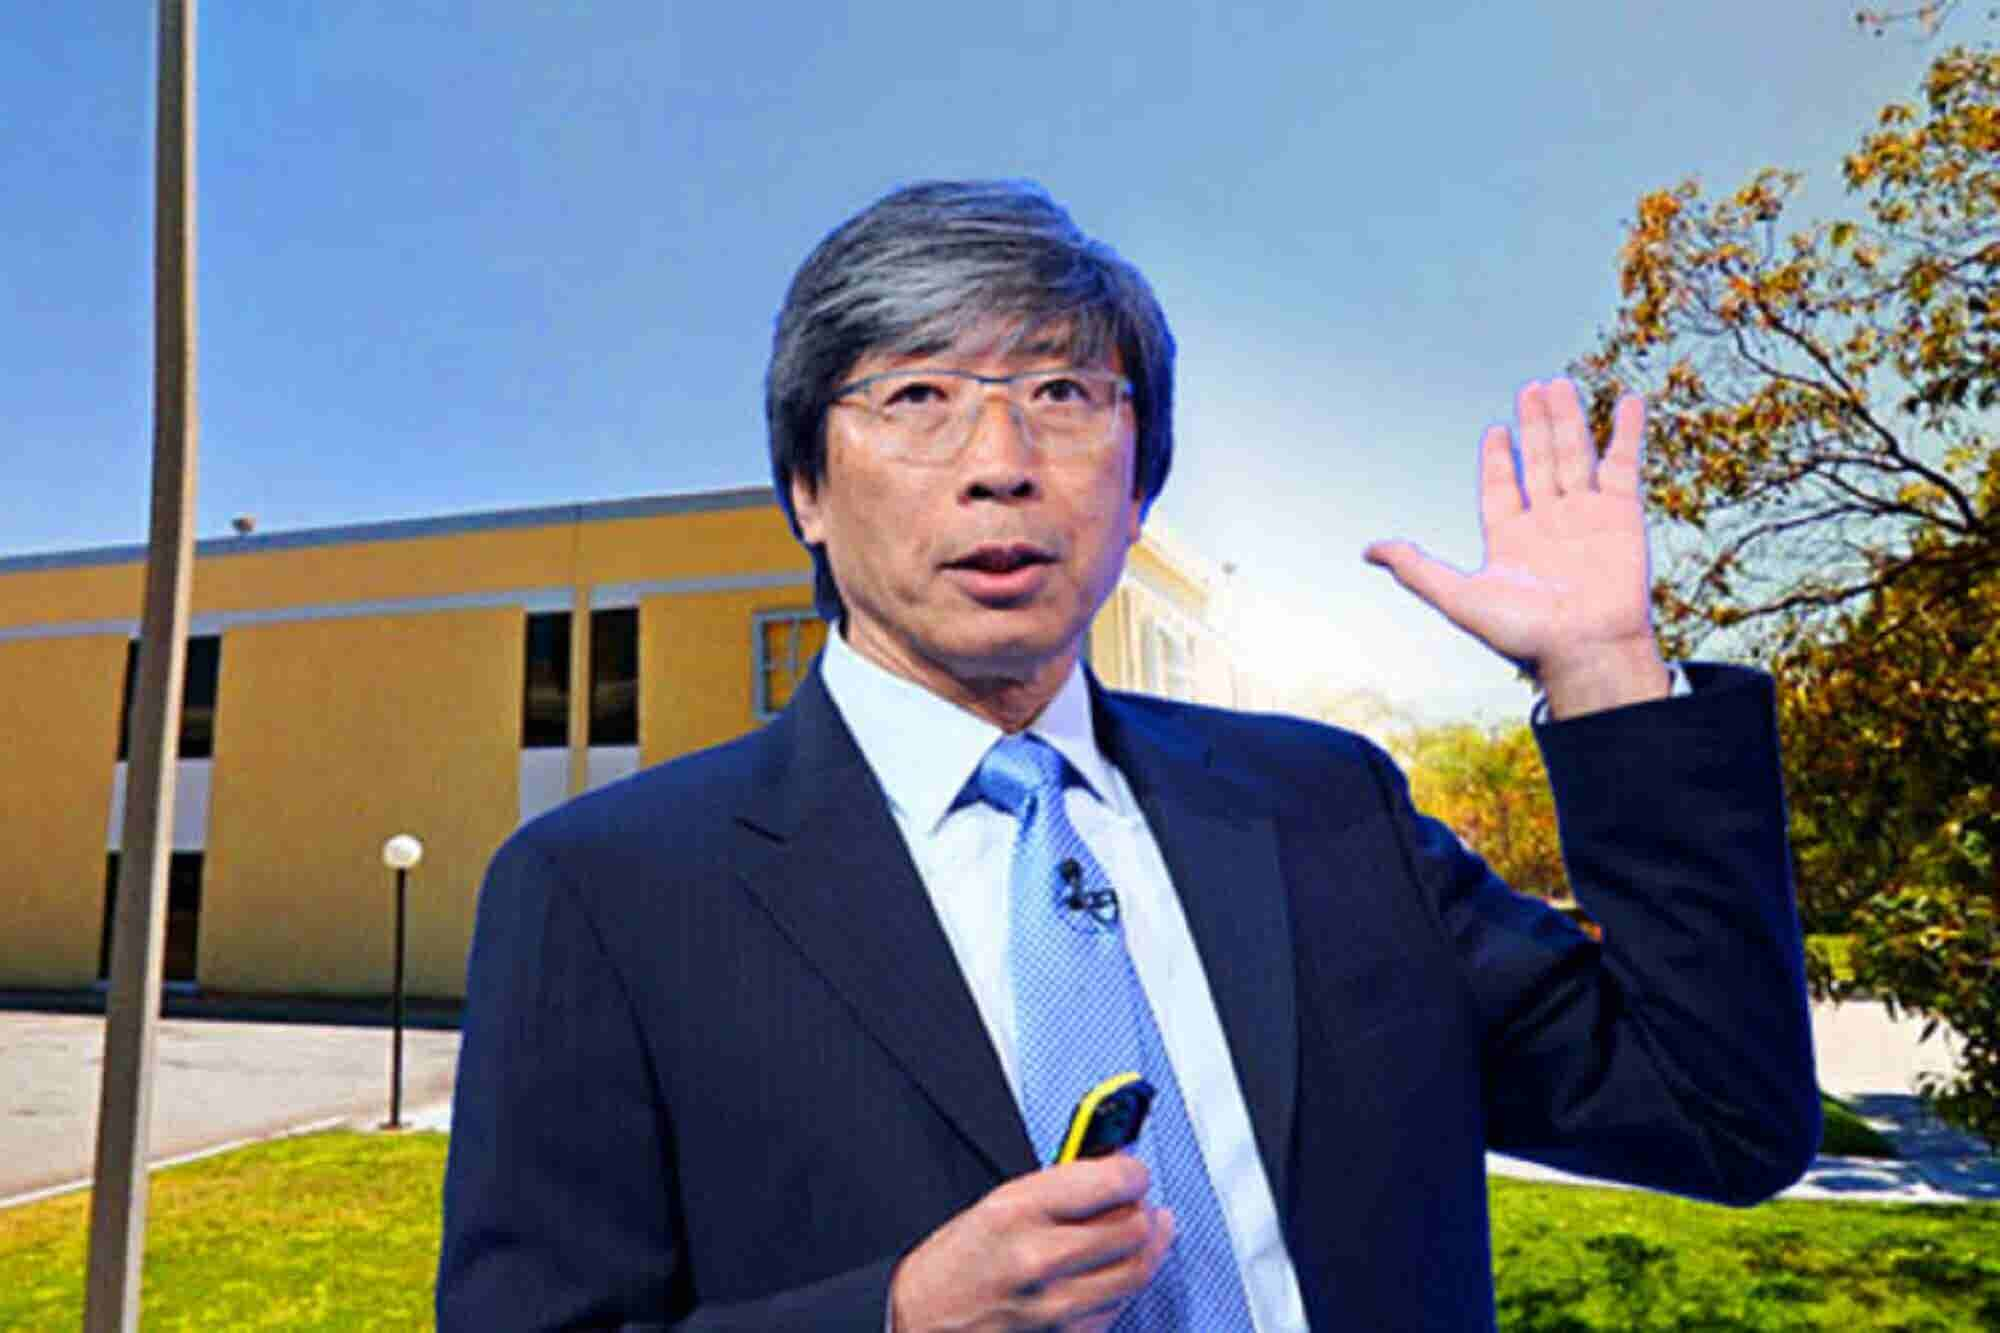 Friday Flashback: Chinese-American Billionaire 'Acquires' Cancer Drug that Would Have Competed With His Drug